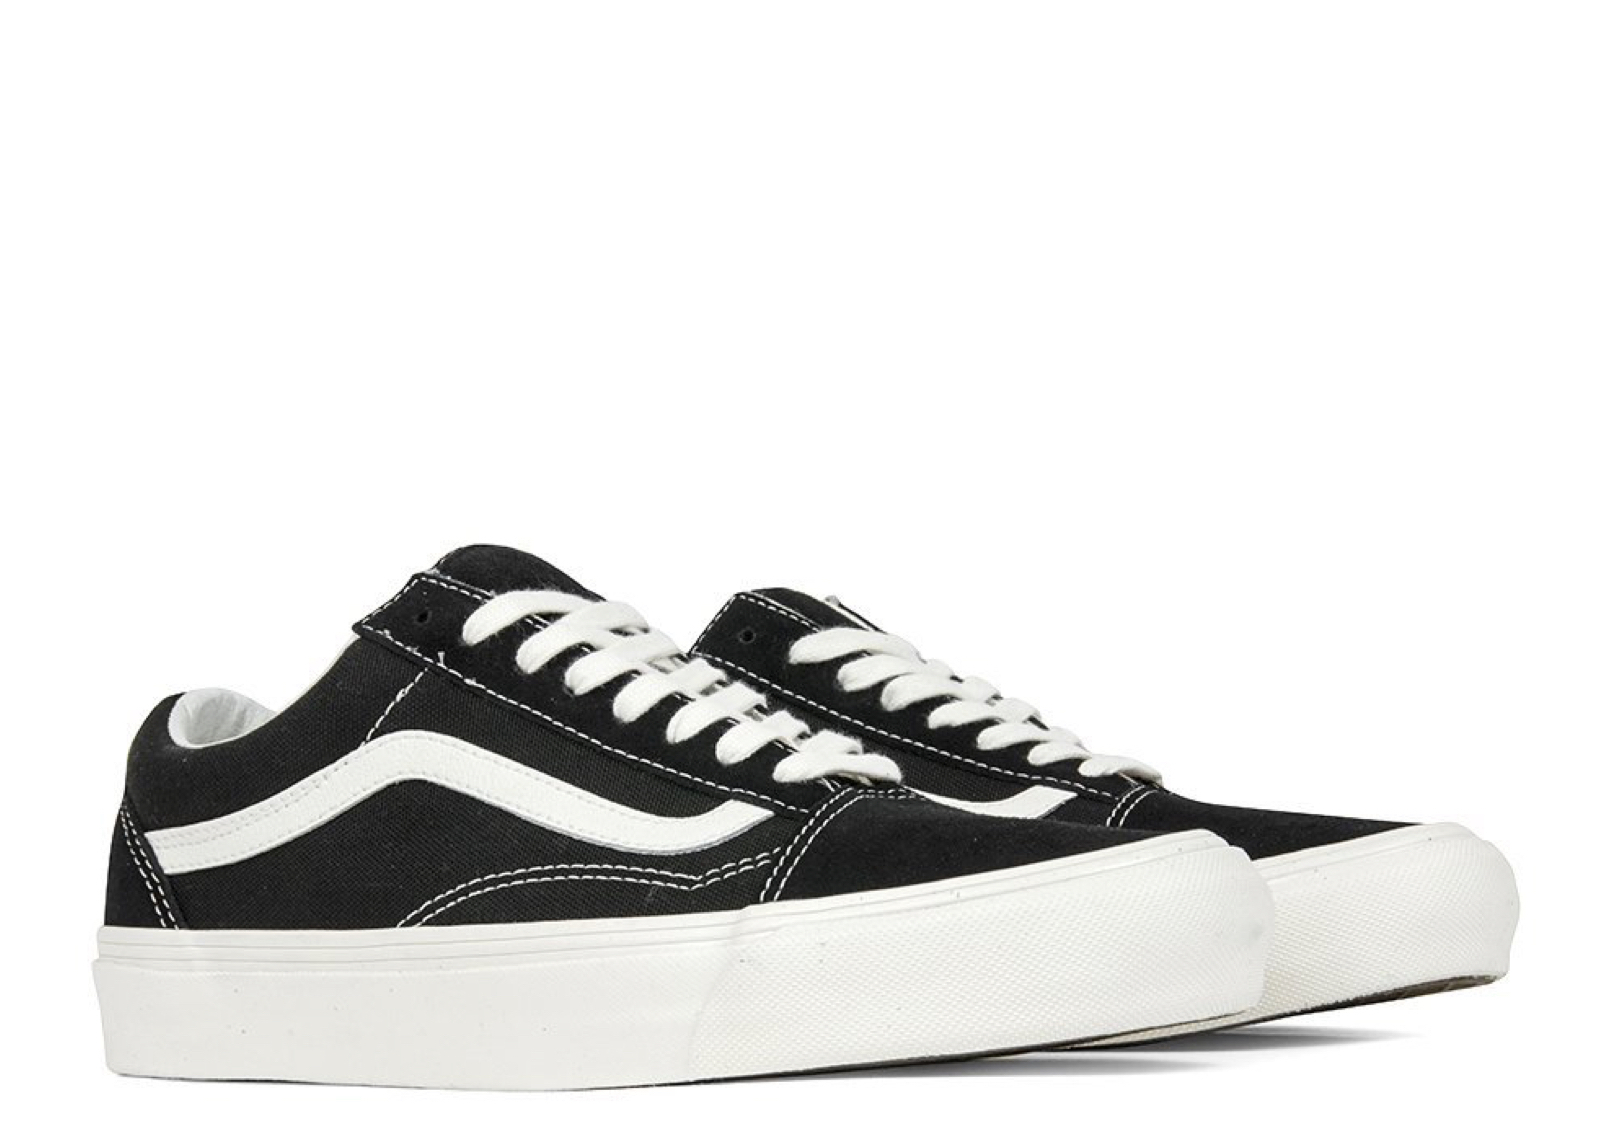 4ae36716bd Kick Avenue - Authentic Sneakers